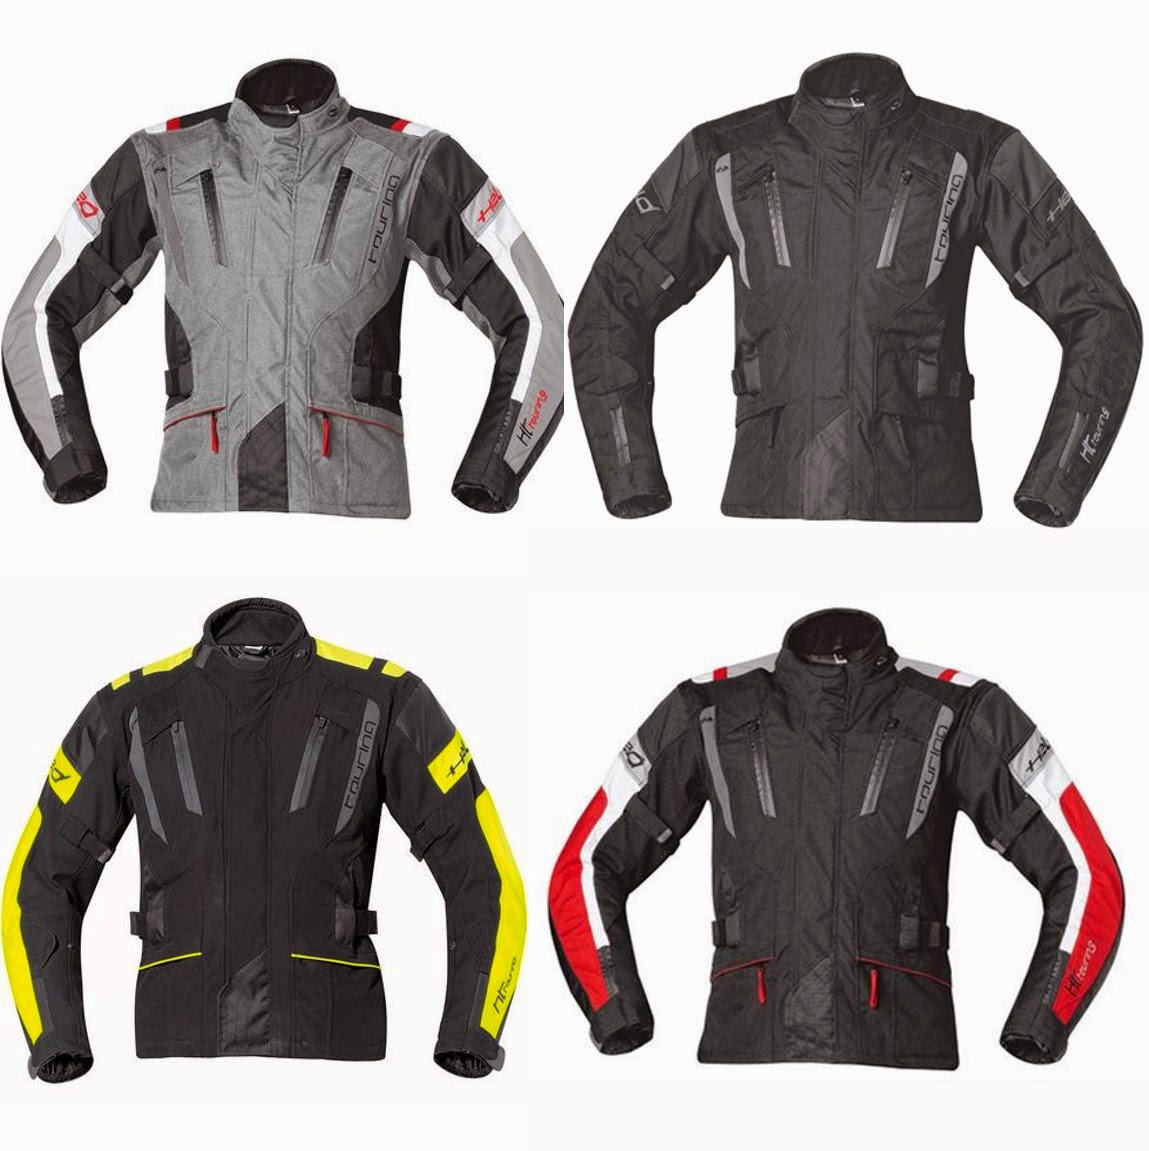 Held make the best winter motorcycle jackets